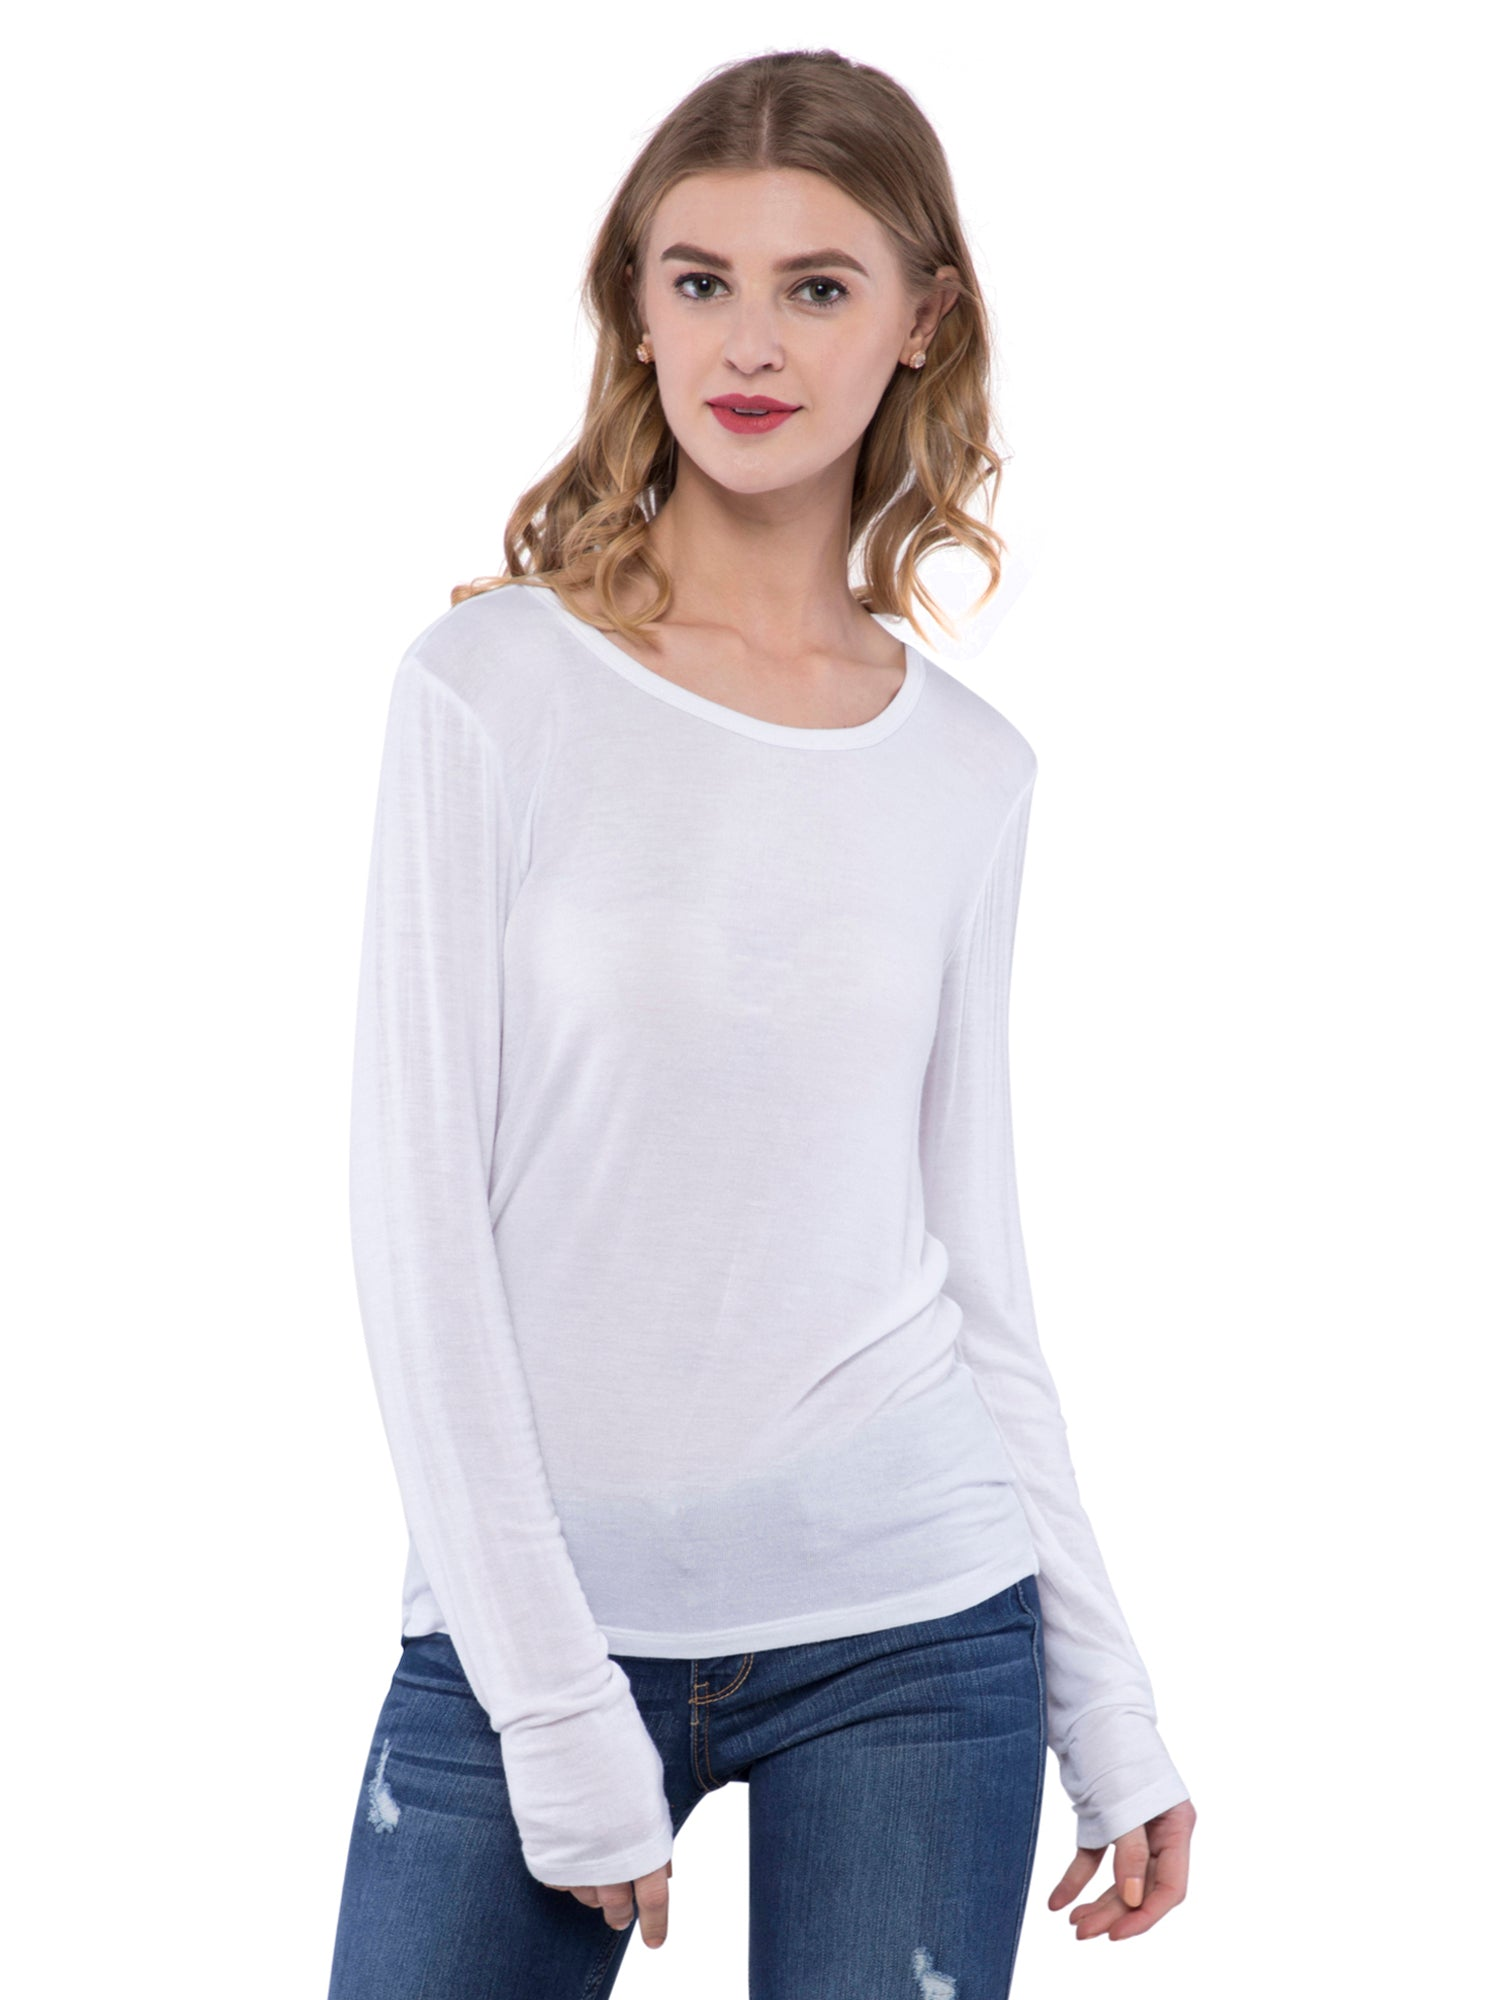 Aeropostale Women White Round Neck Top